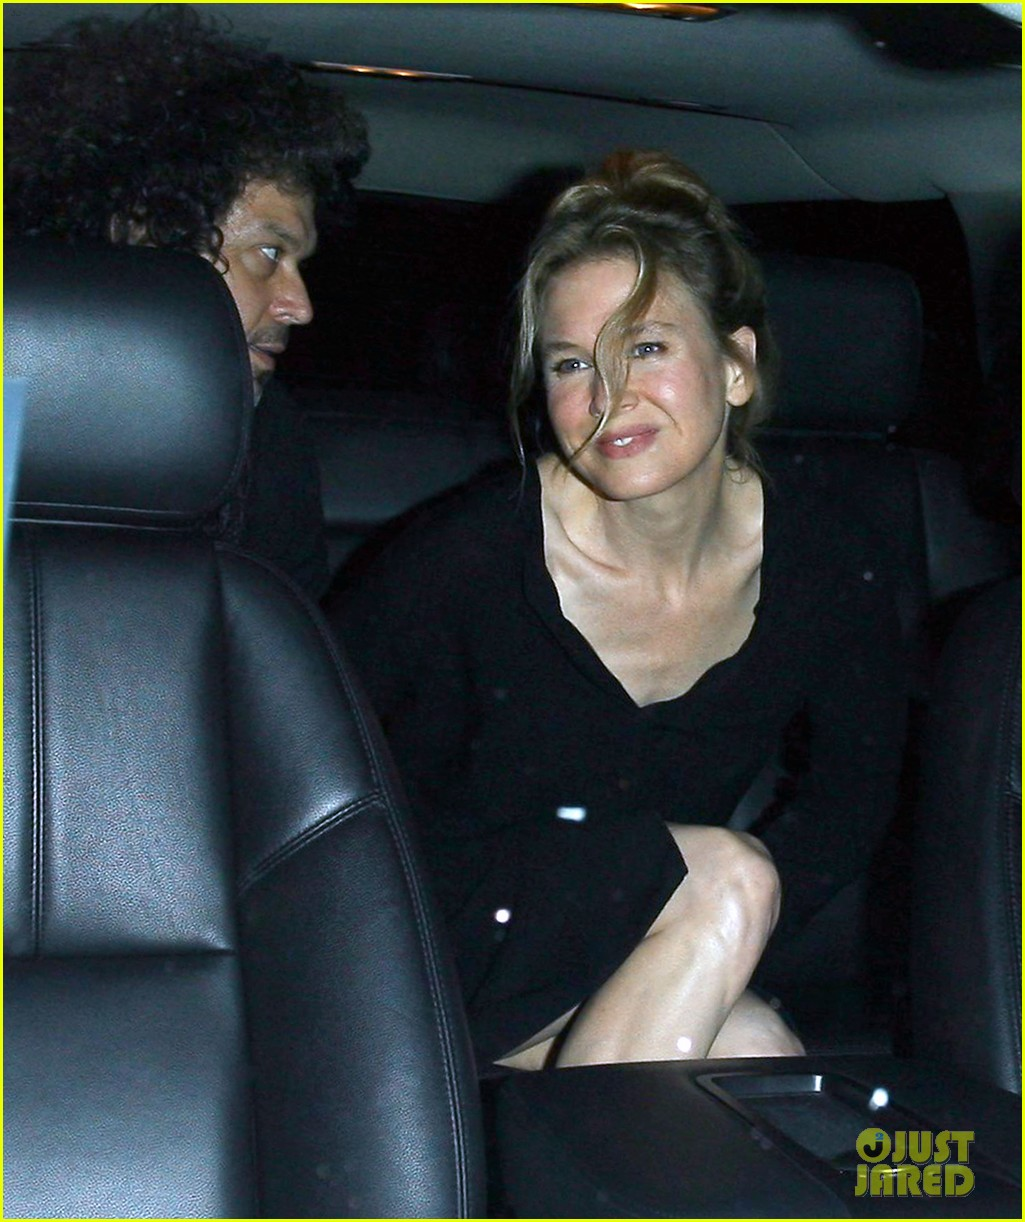 Renee Zellweger & Doyle Bramhall II Still Going Strong, First Pics ... Renee Zellweger